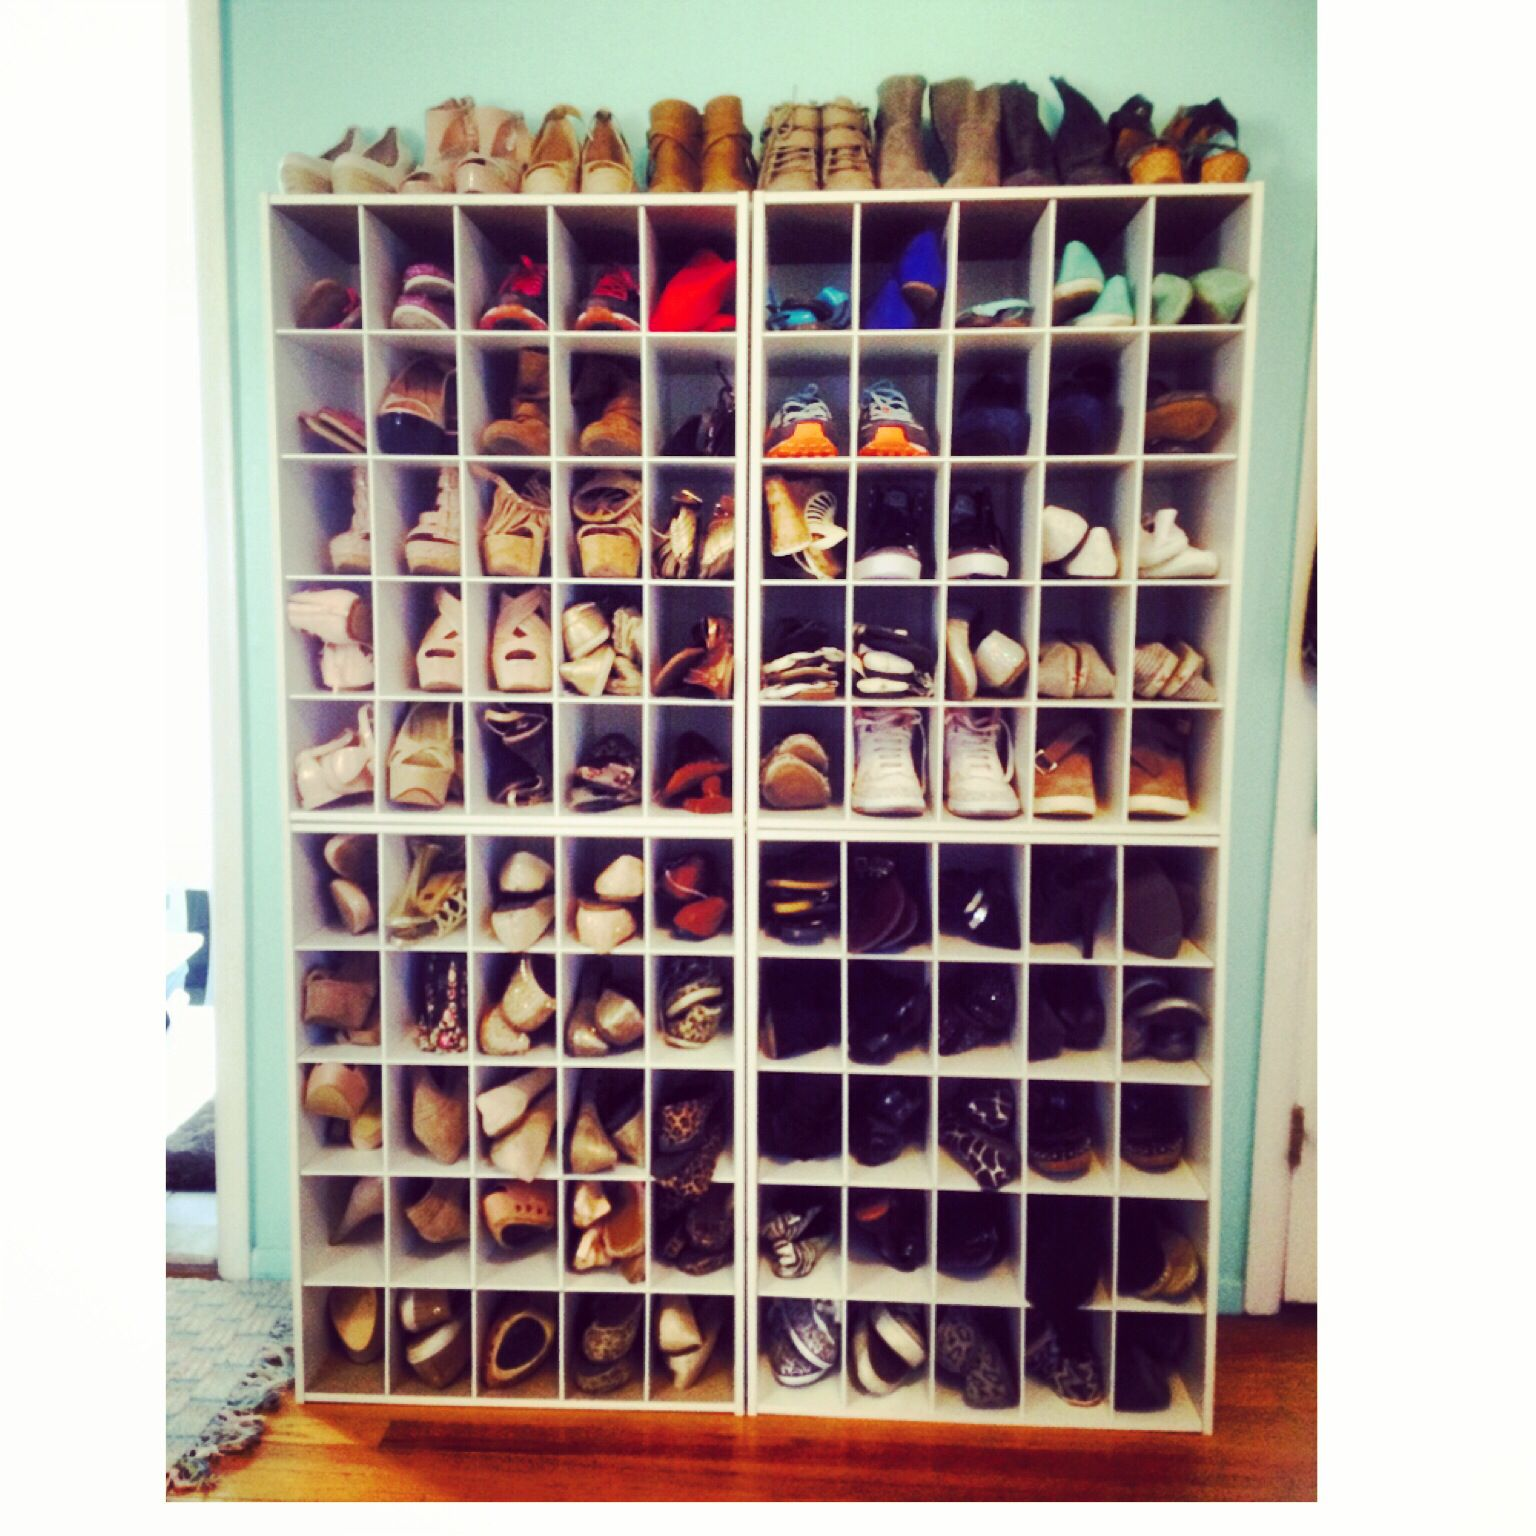 Shoe Cubbies From Lowes Diy Organization Shoe Cubby Home